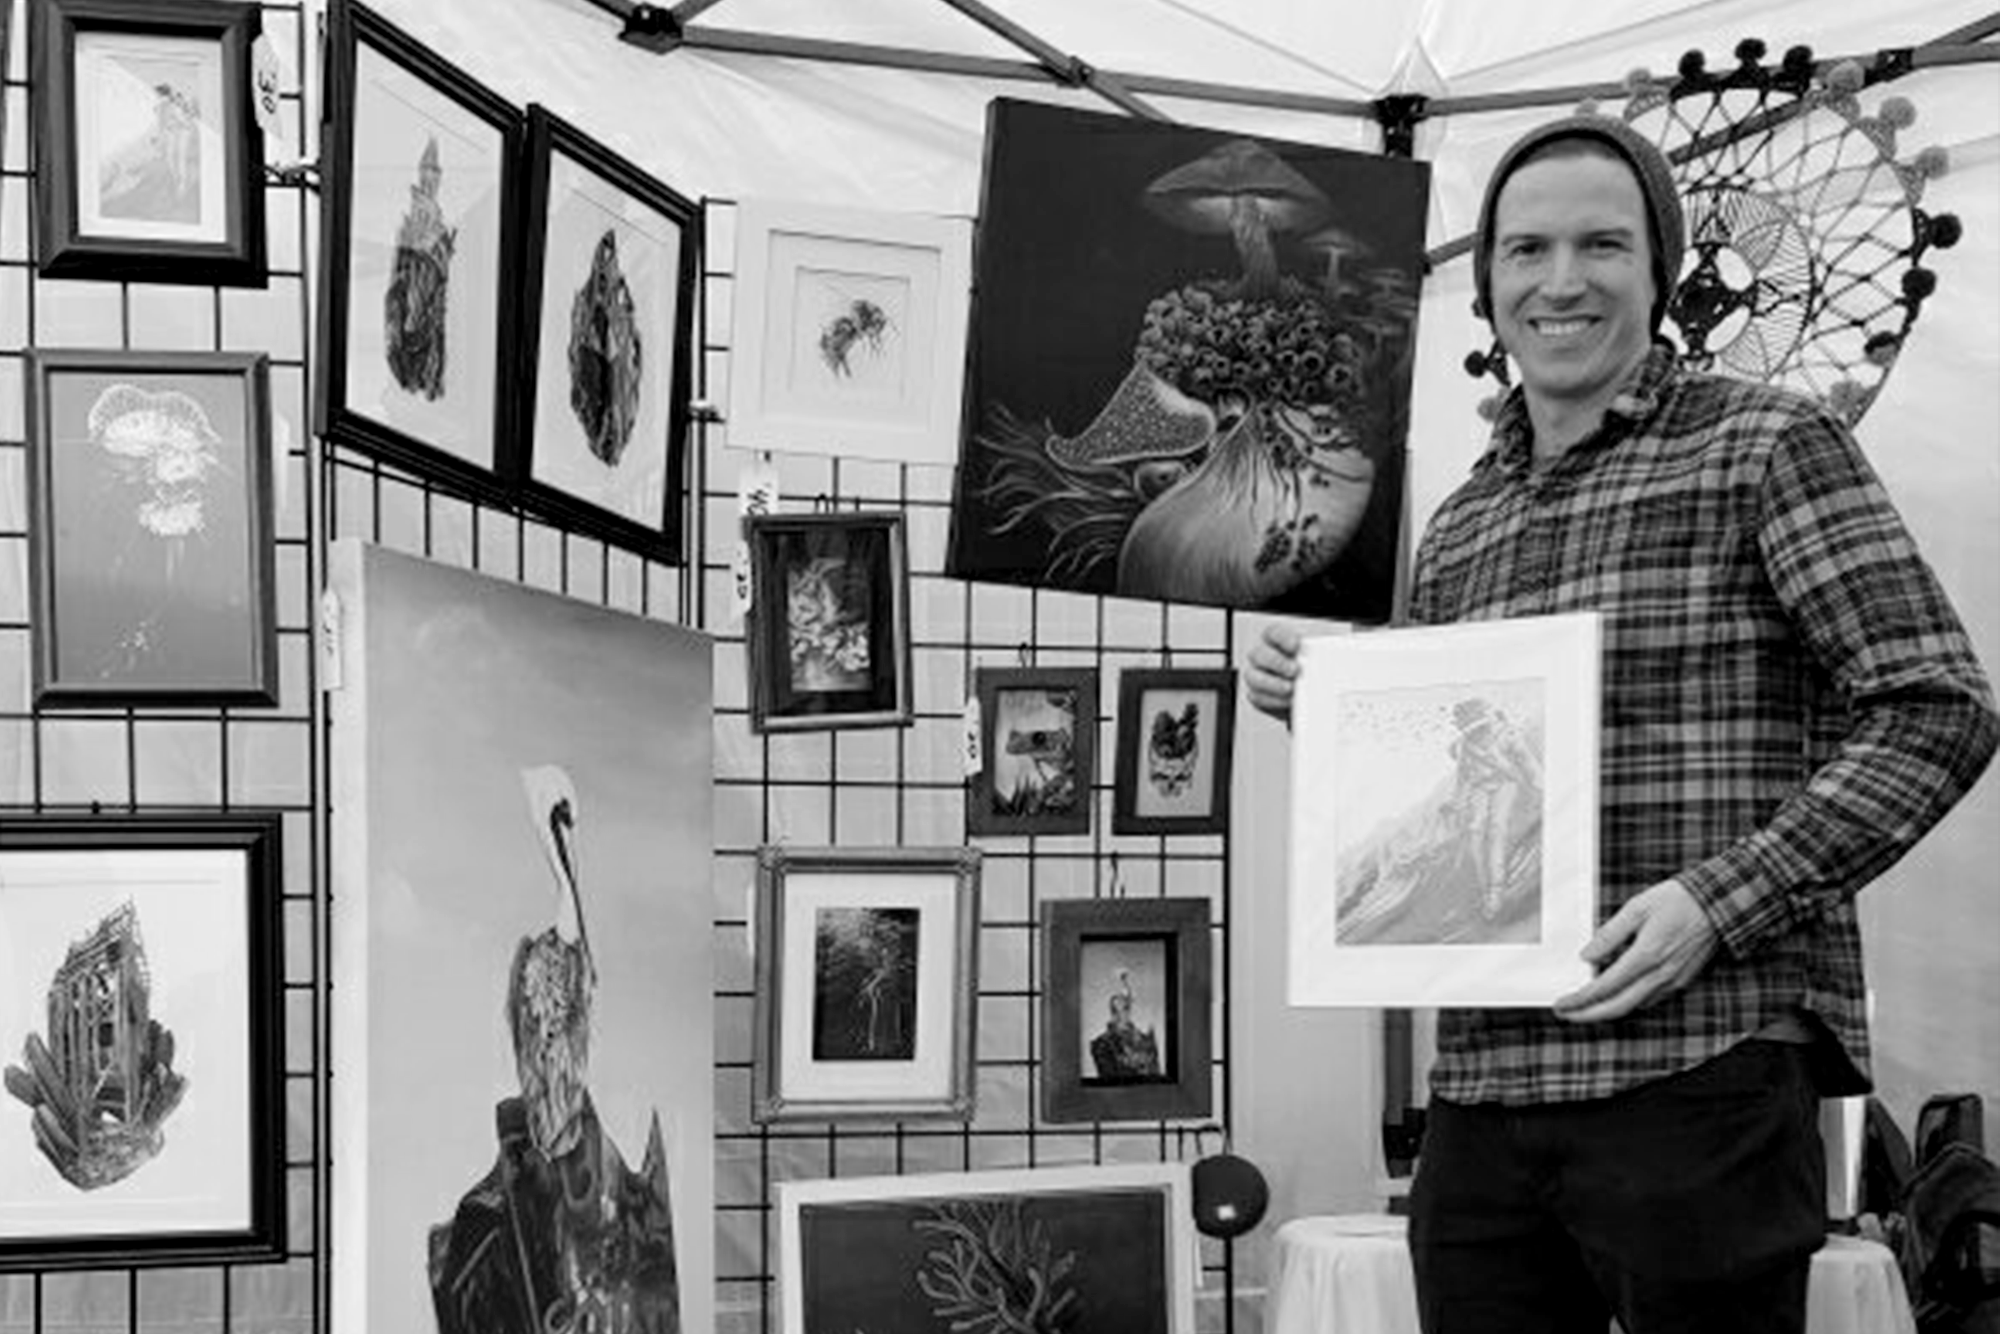 Ryan Breault standing next to artwork at a local market